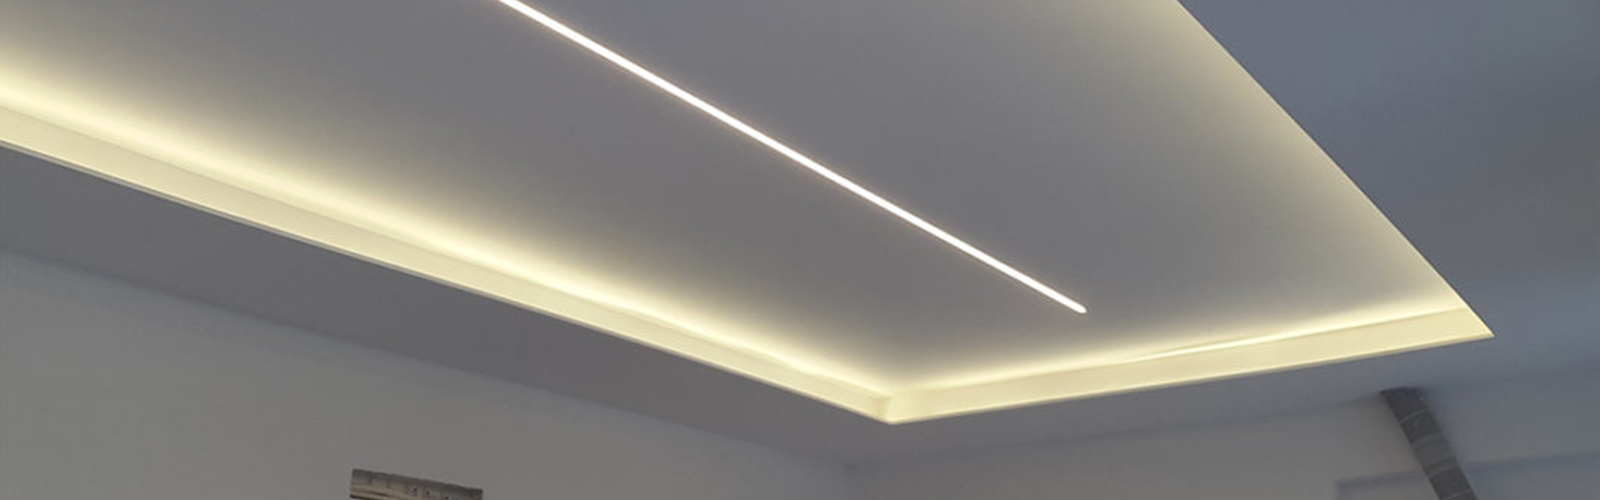 Csc controsoffitto con led